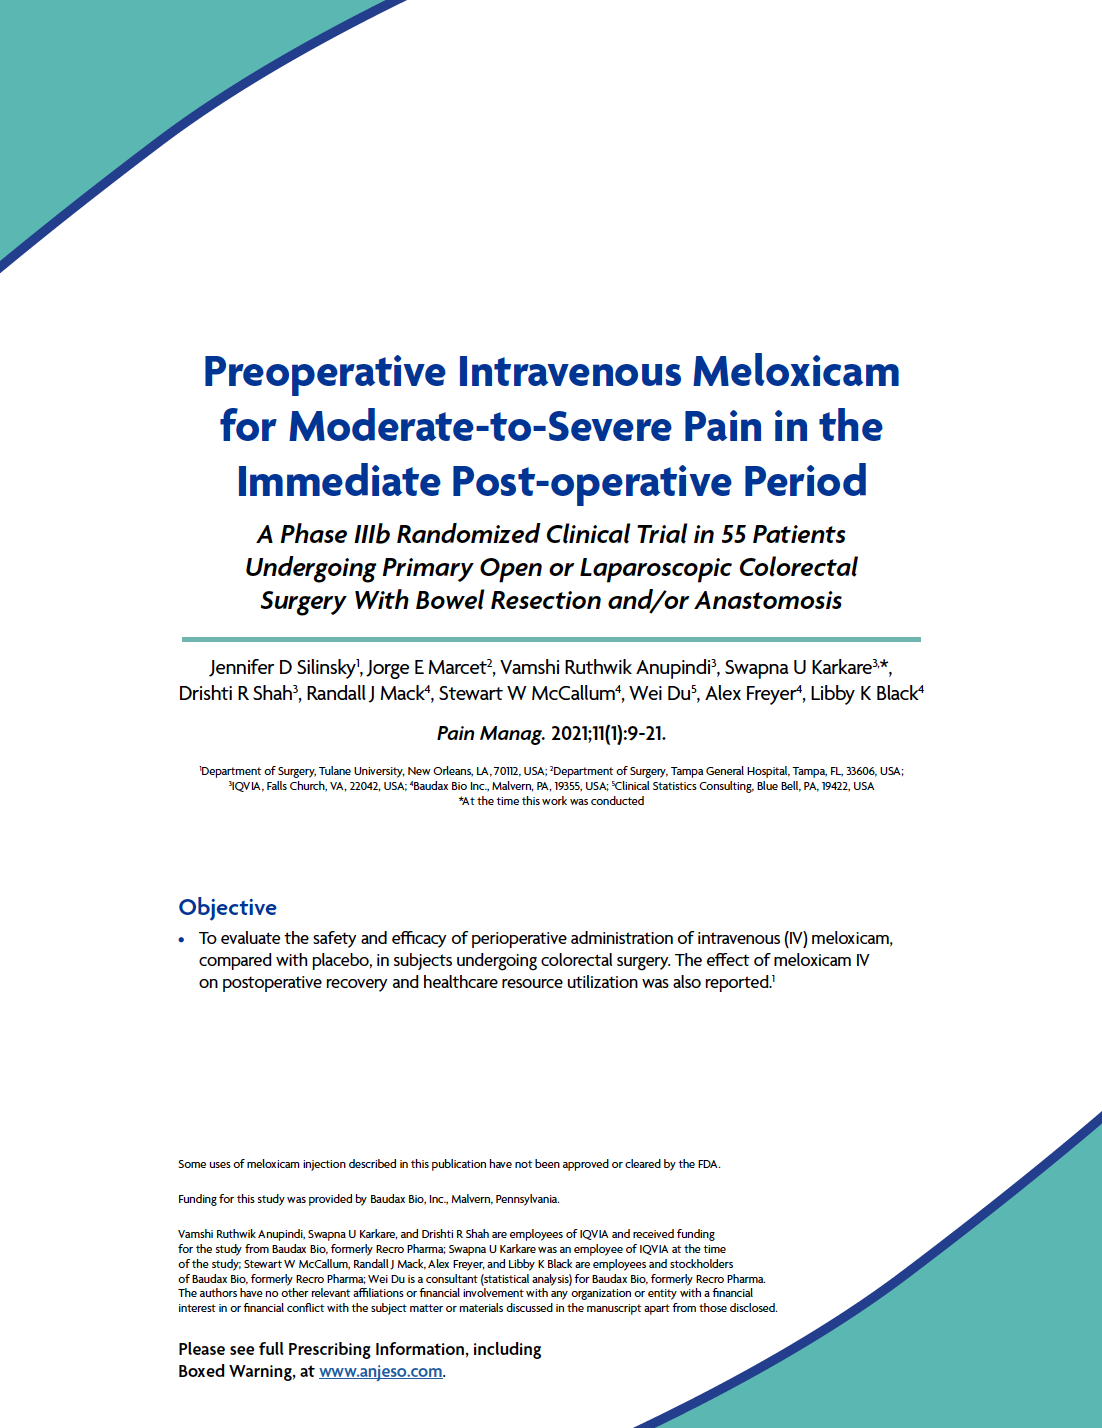 Preoperative Intravenous Meloxicam for Moderate-to-Severe Pain in the Immediate Post-operative Period thumbnail